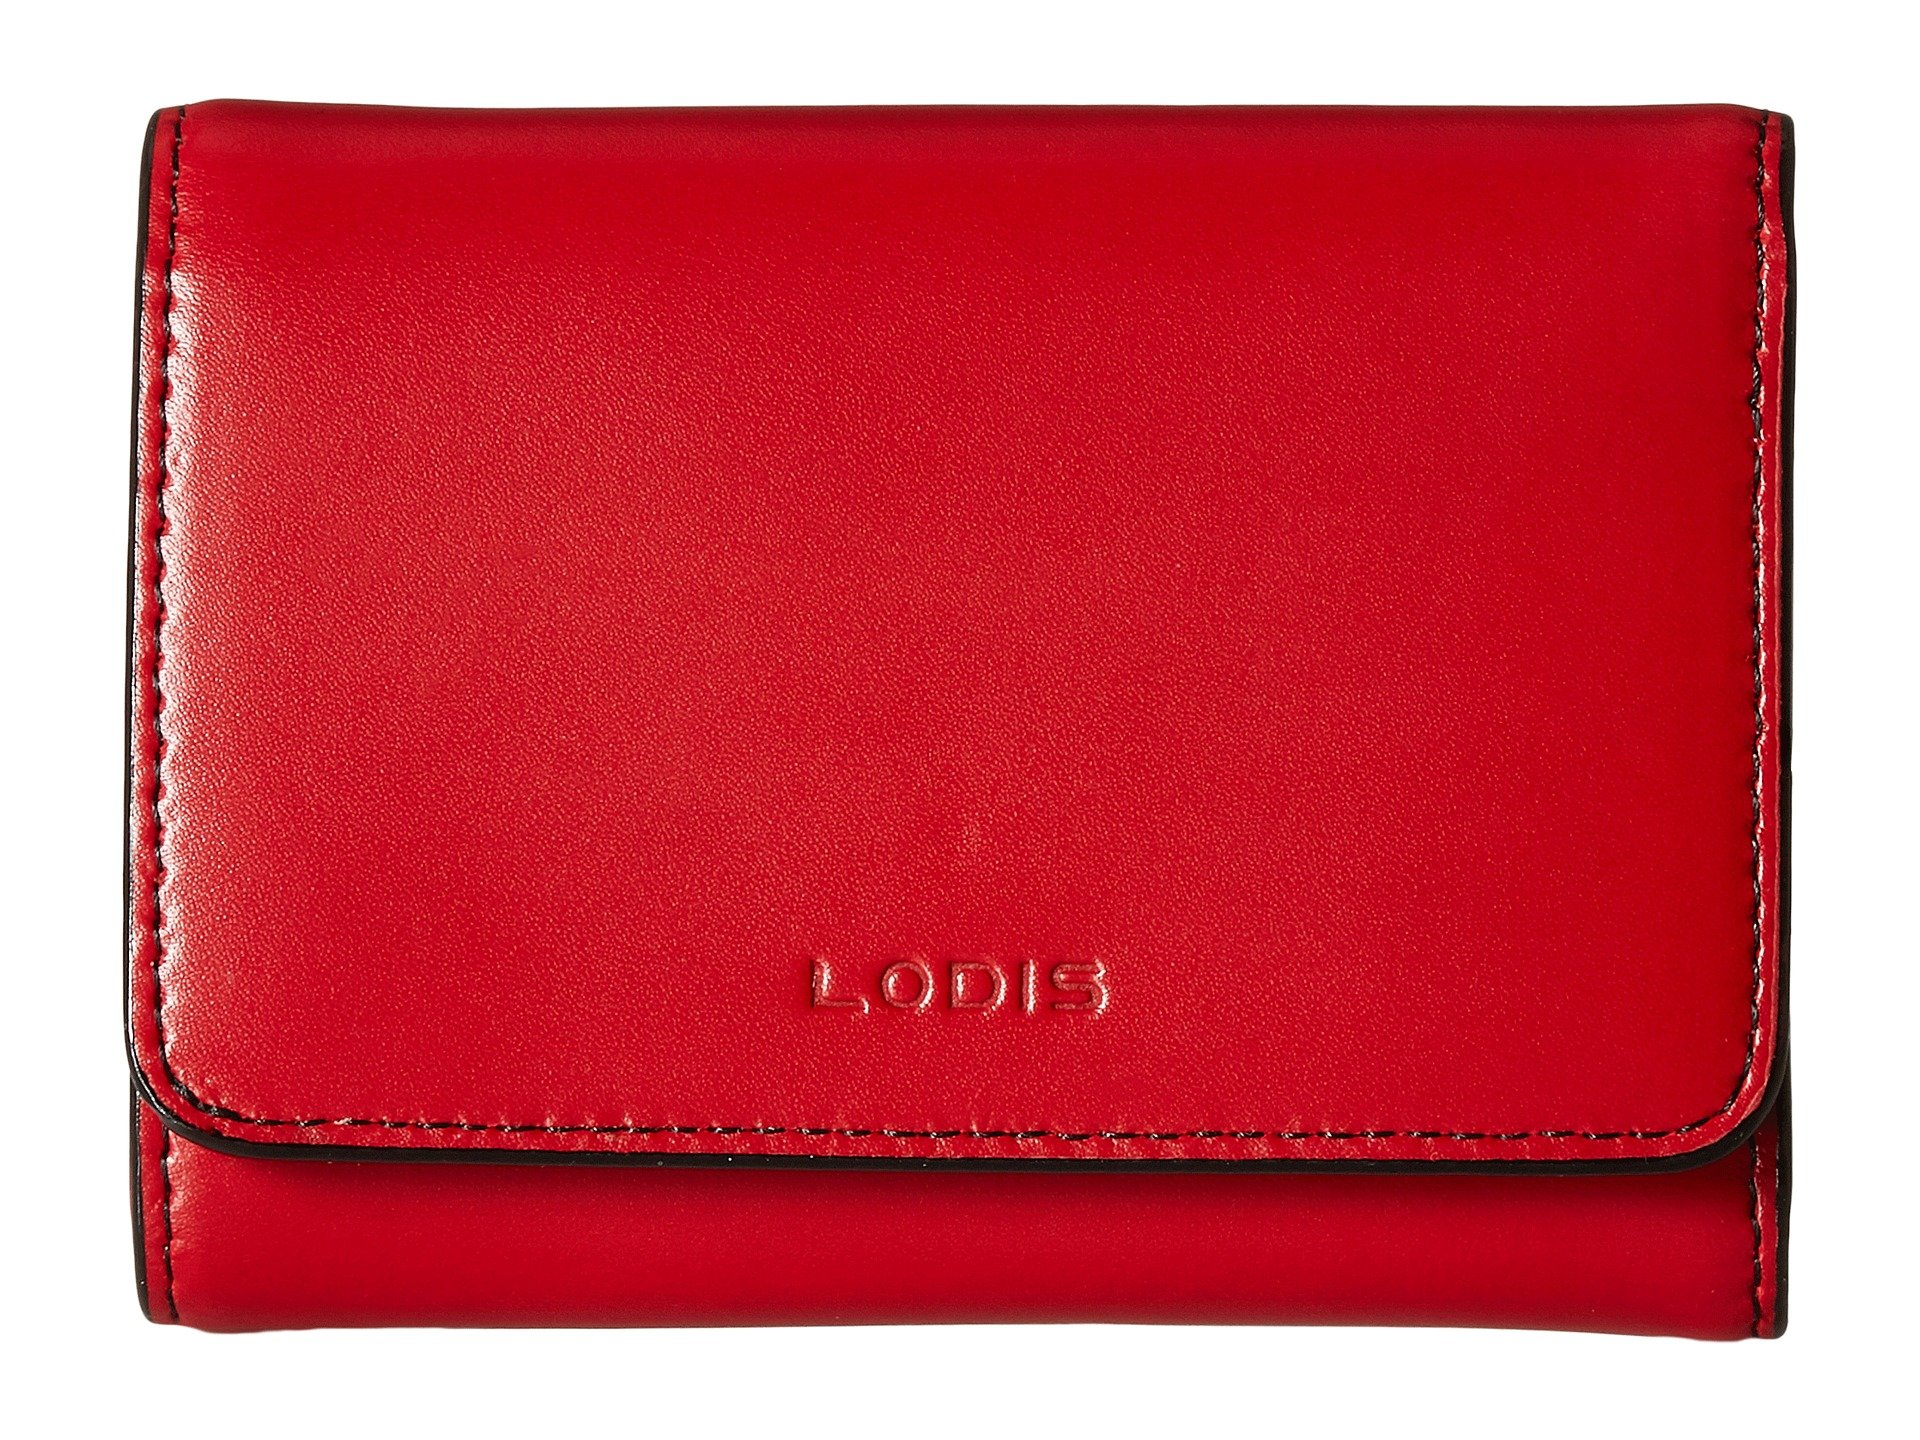 Purse Accessories Audrey Red French Lodis Rfid Mallory 60X01w